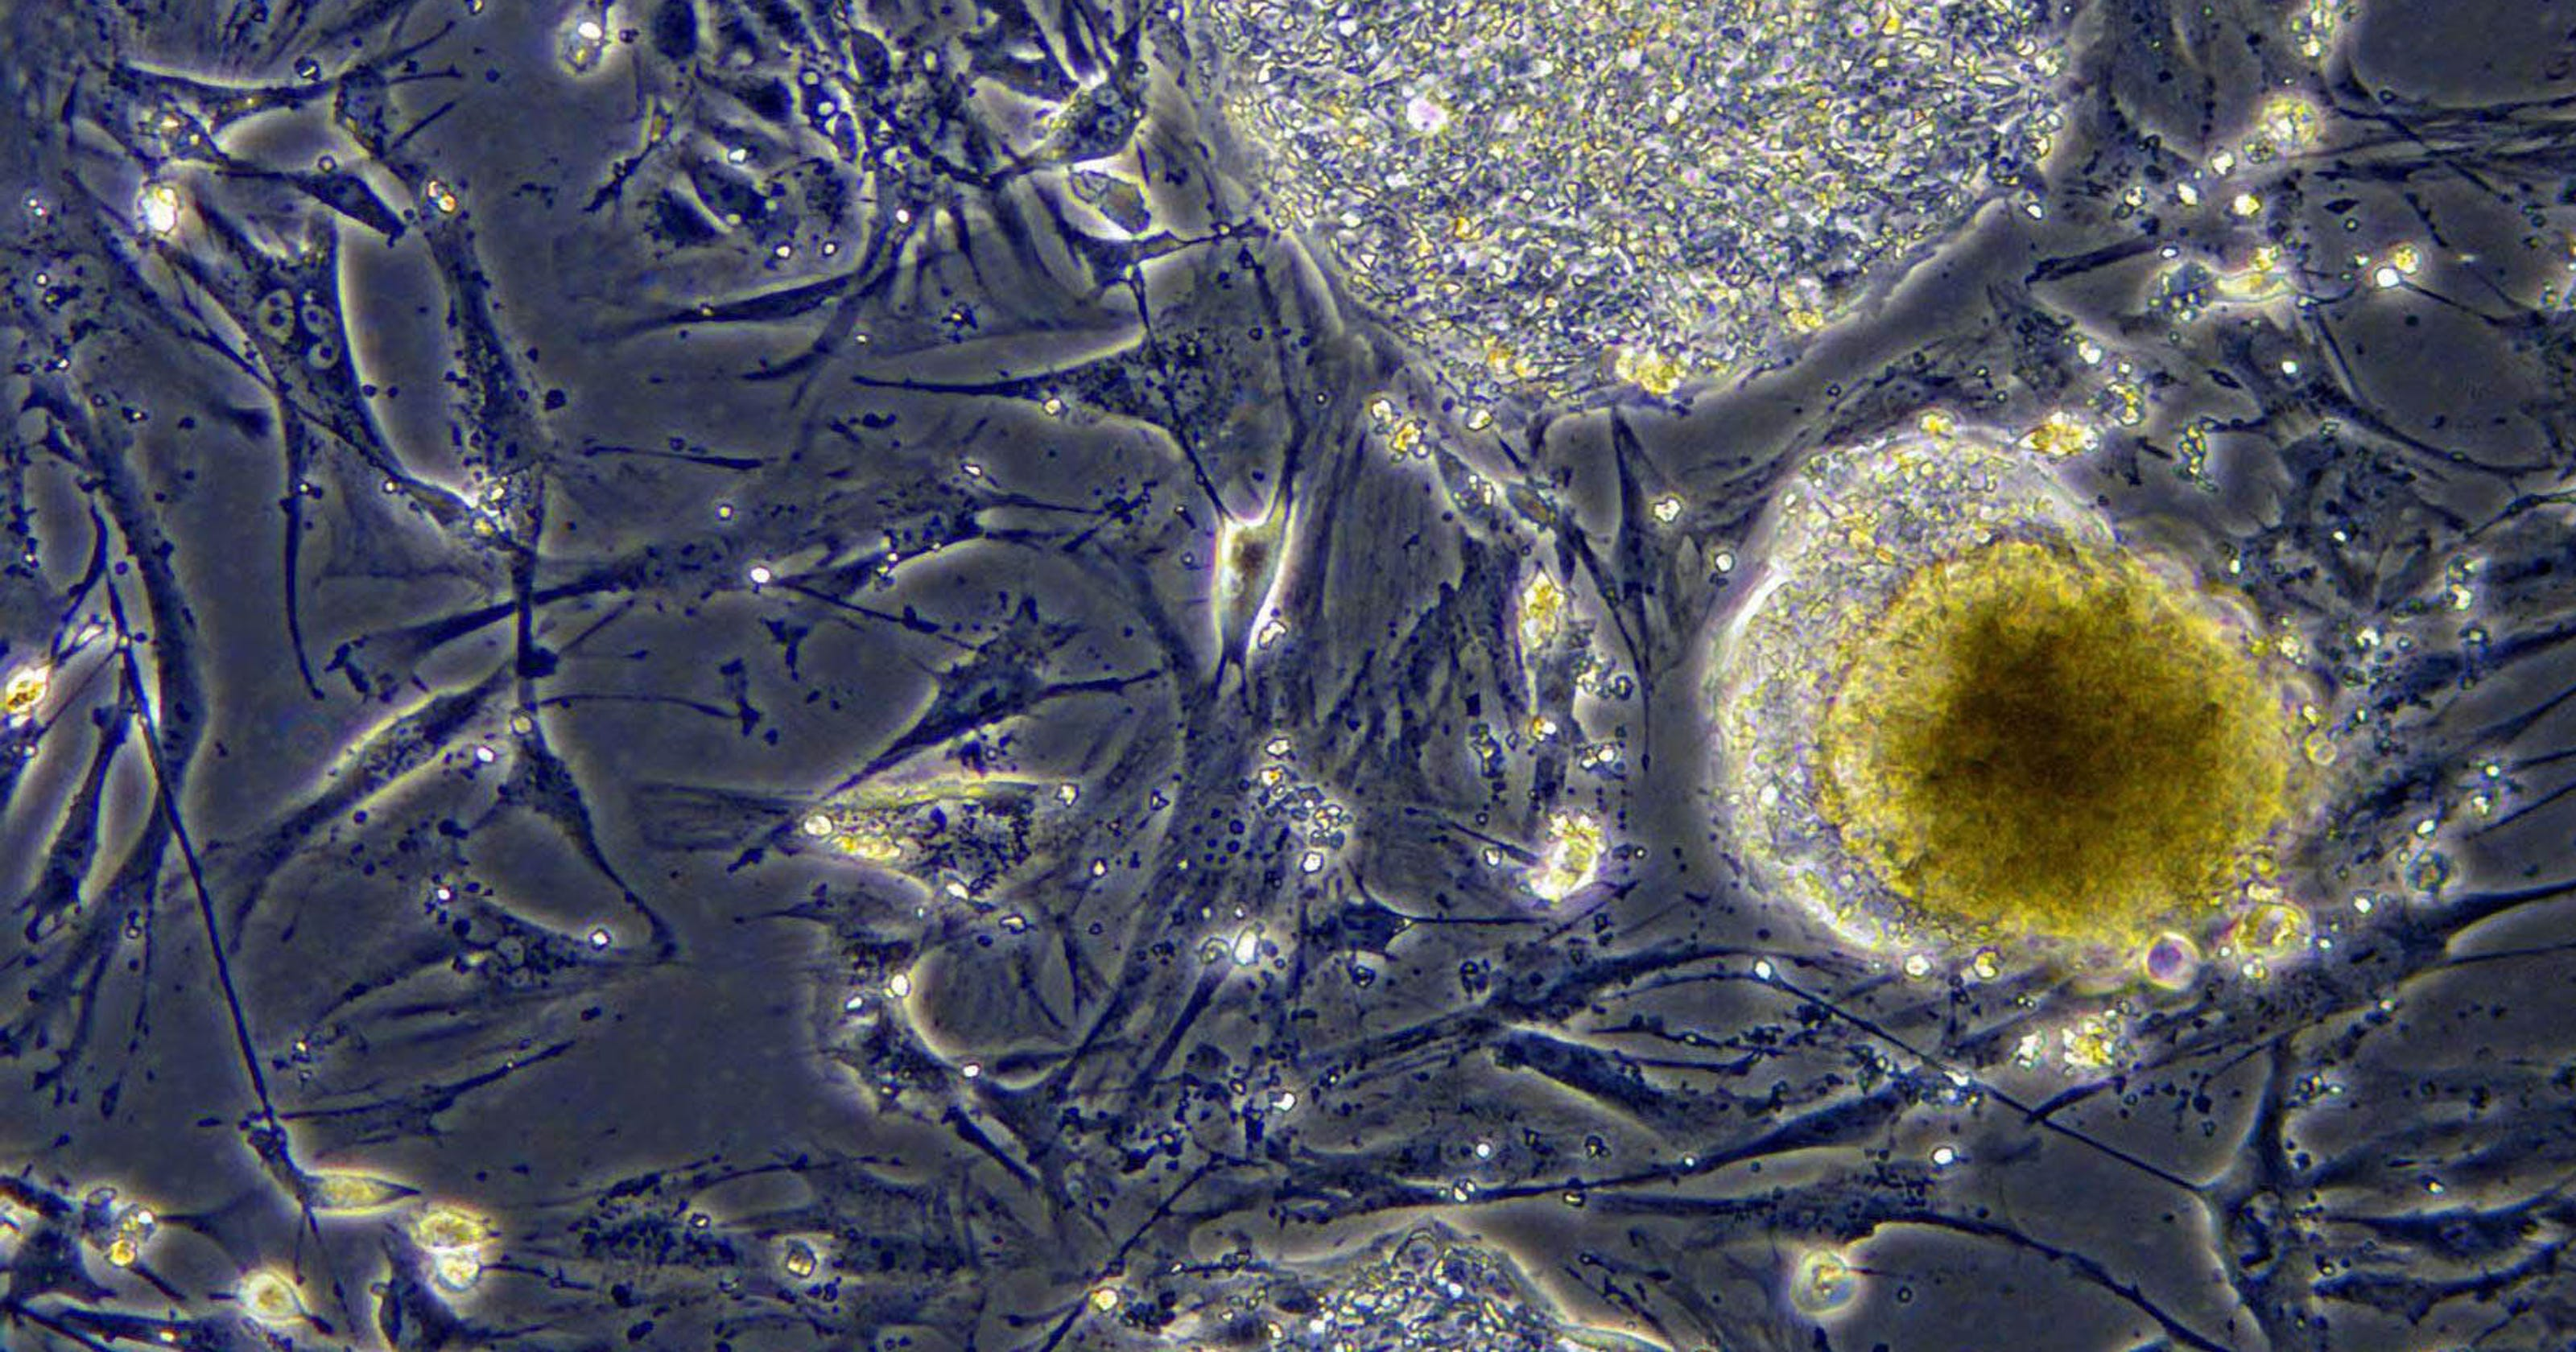 Two decades after stem cell breakthrough, help for patients